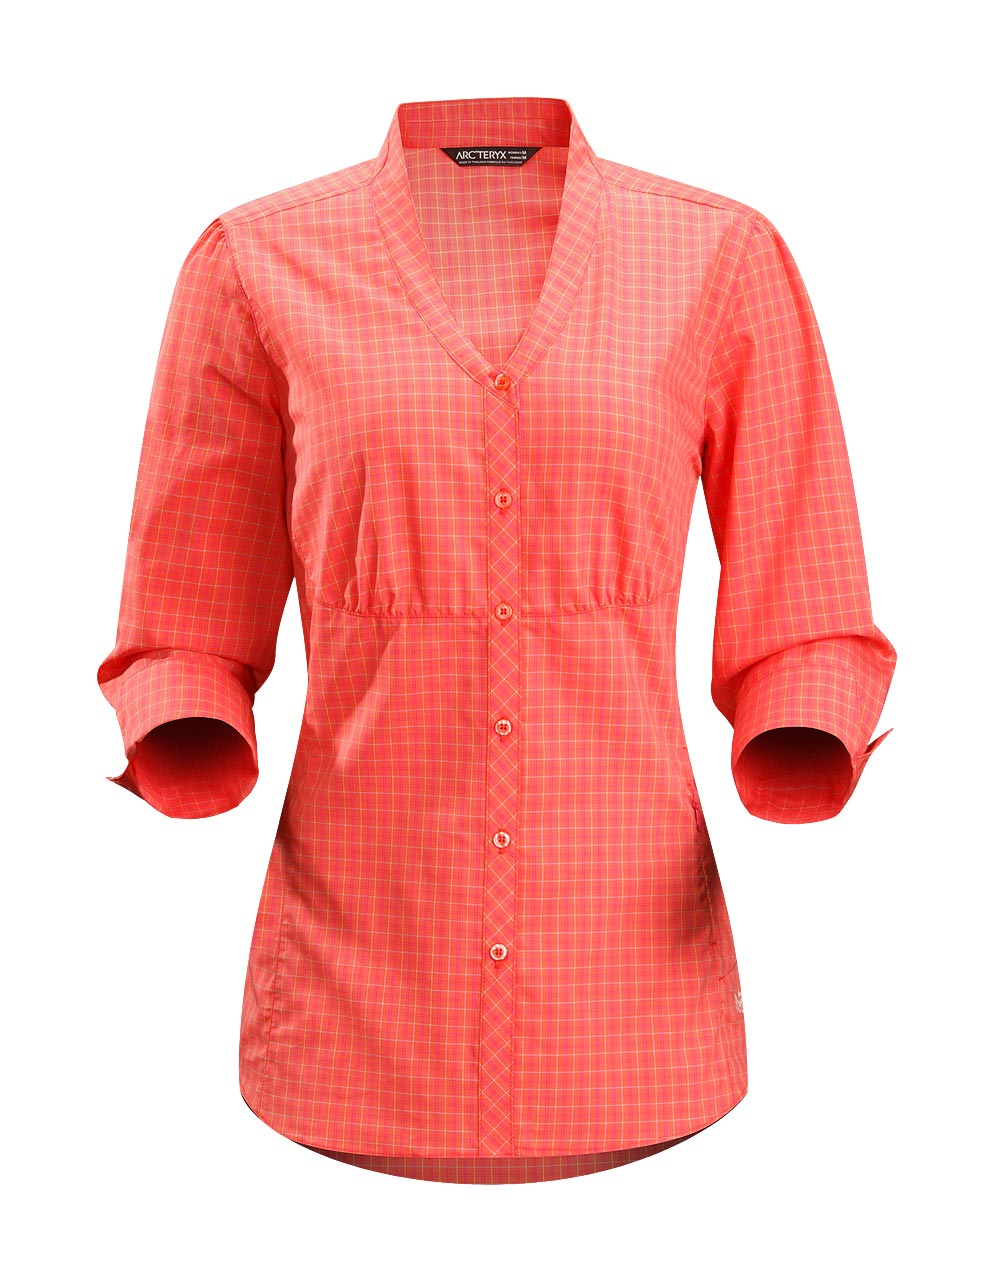 Arcteryx Women Autumn Coral Destina Shirt LS